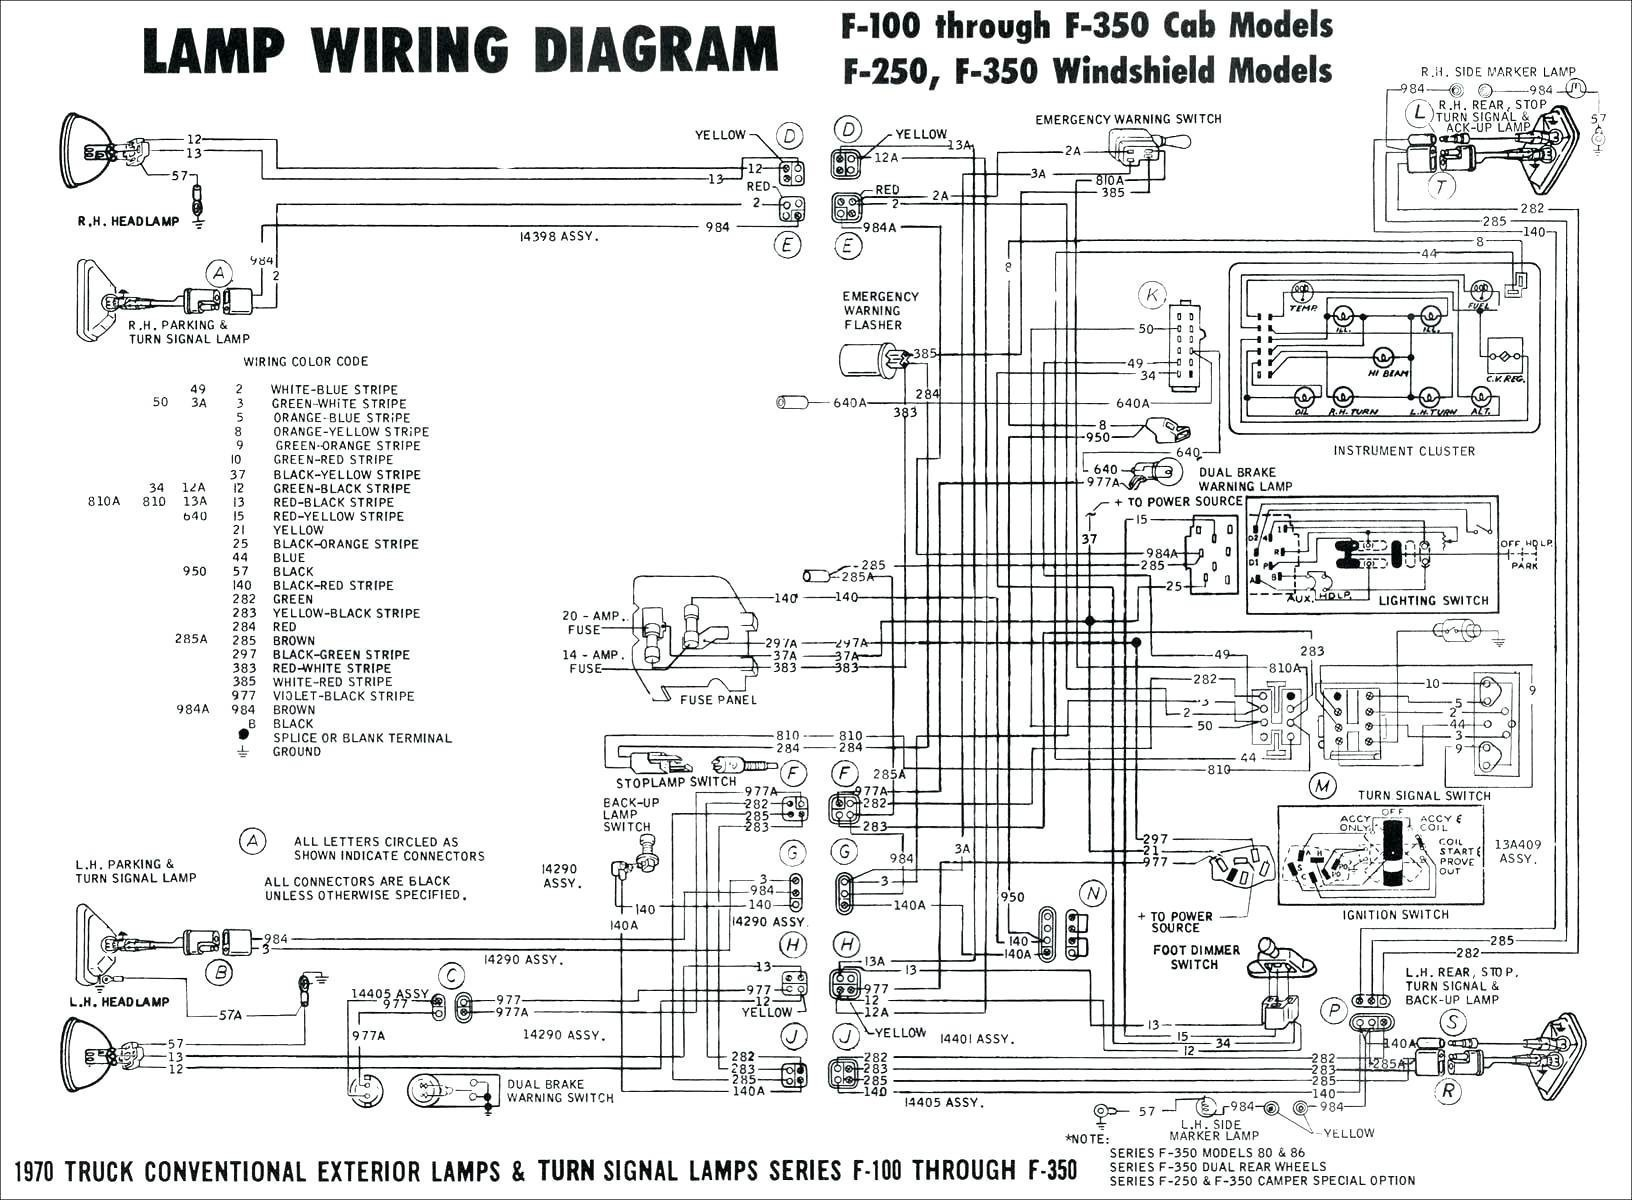 Coil Ignition System Diagram Wiring Diagram the Ignition System Refrence Basic Ignition System Of Coil Ignition System Diagram Wiring Diagram the Ignition System Valid Ignition Switch Wiring